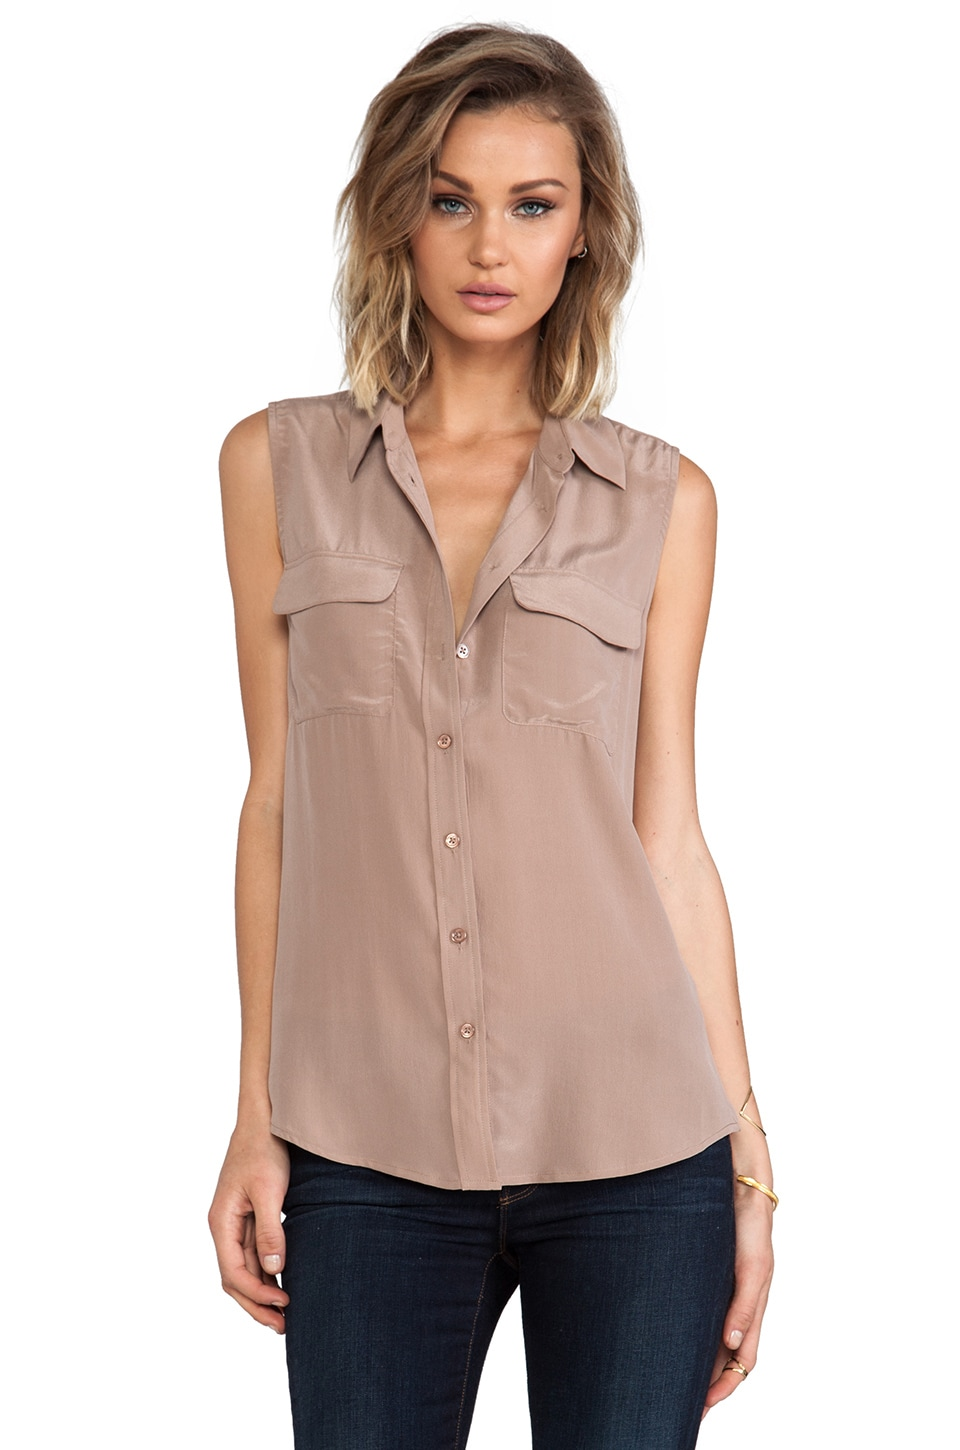 Equipment Sleeveless Slim Signature Blouse in Rosewood